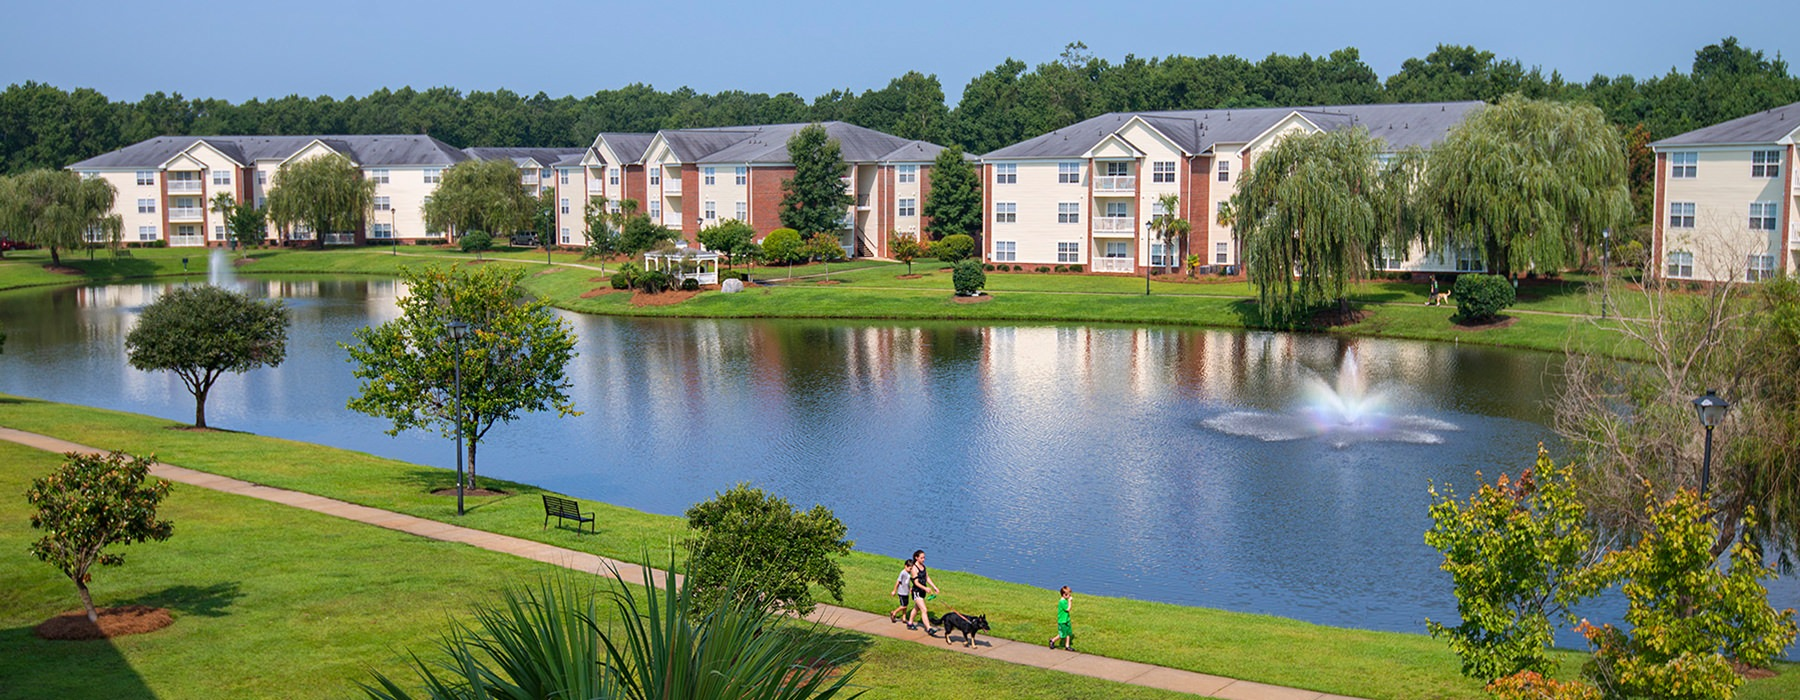 Overview of Seaside Grove apartments overlooking a pond